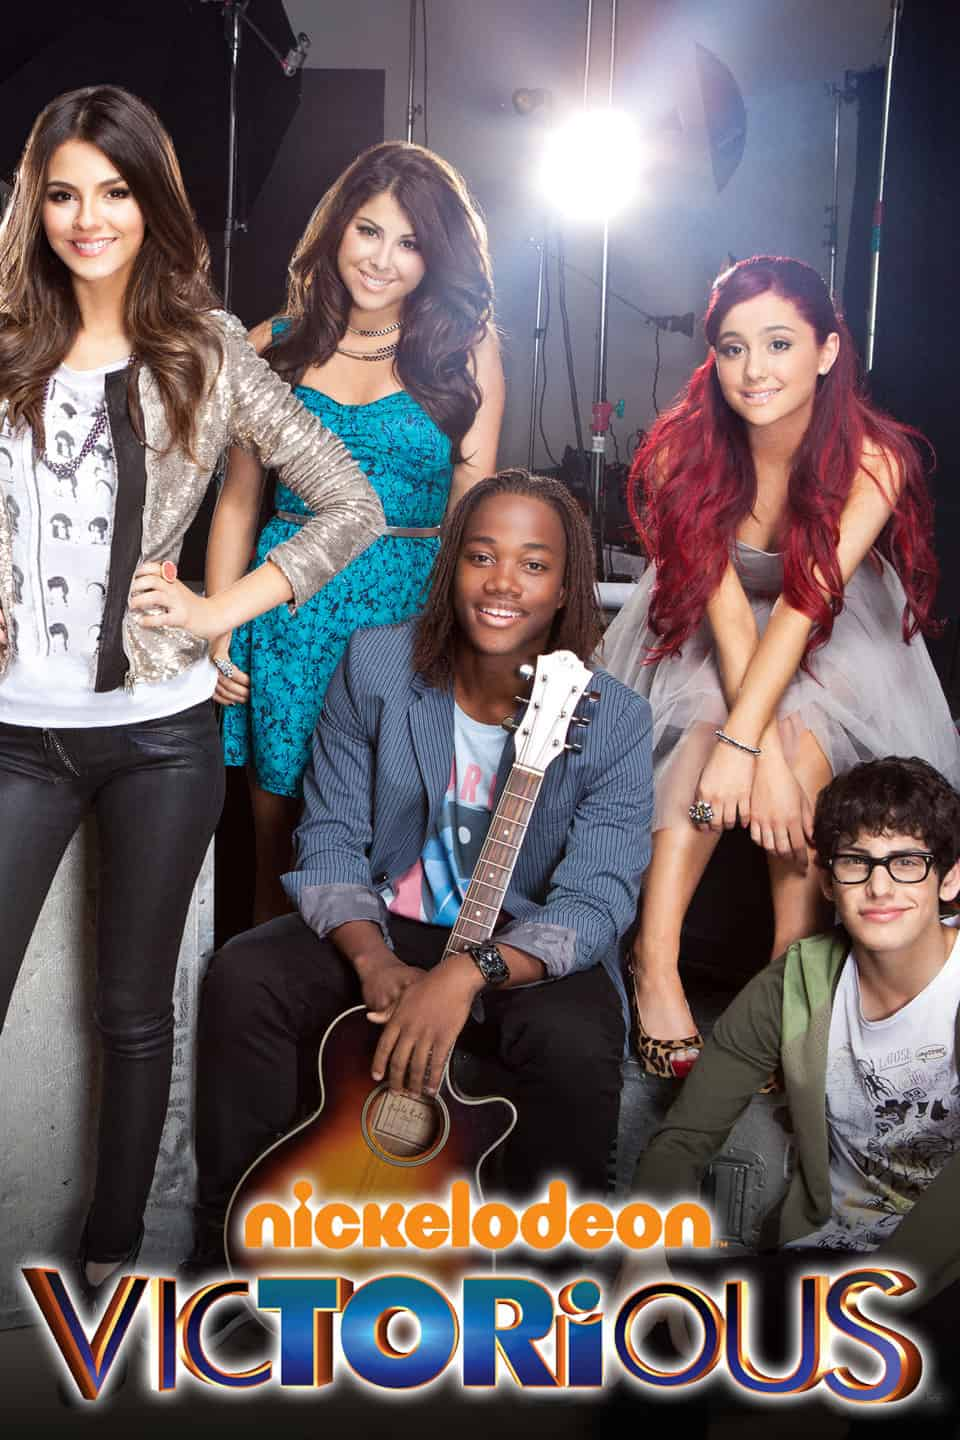 Victorious, 2010